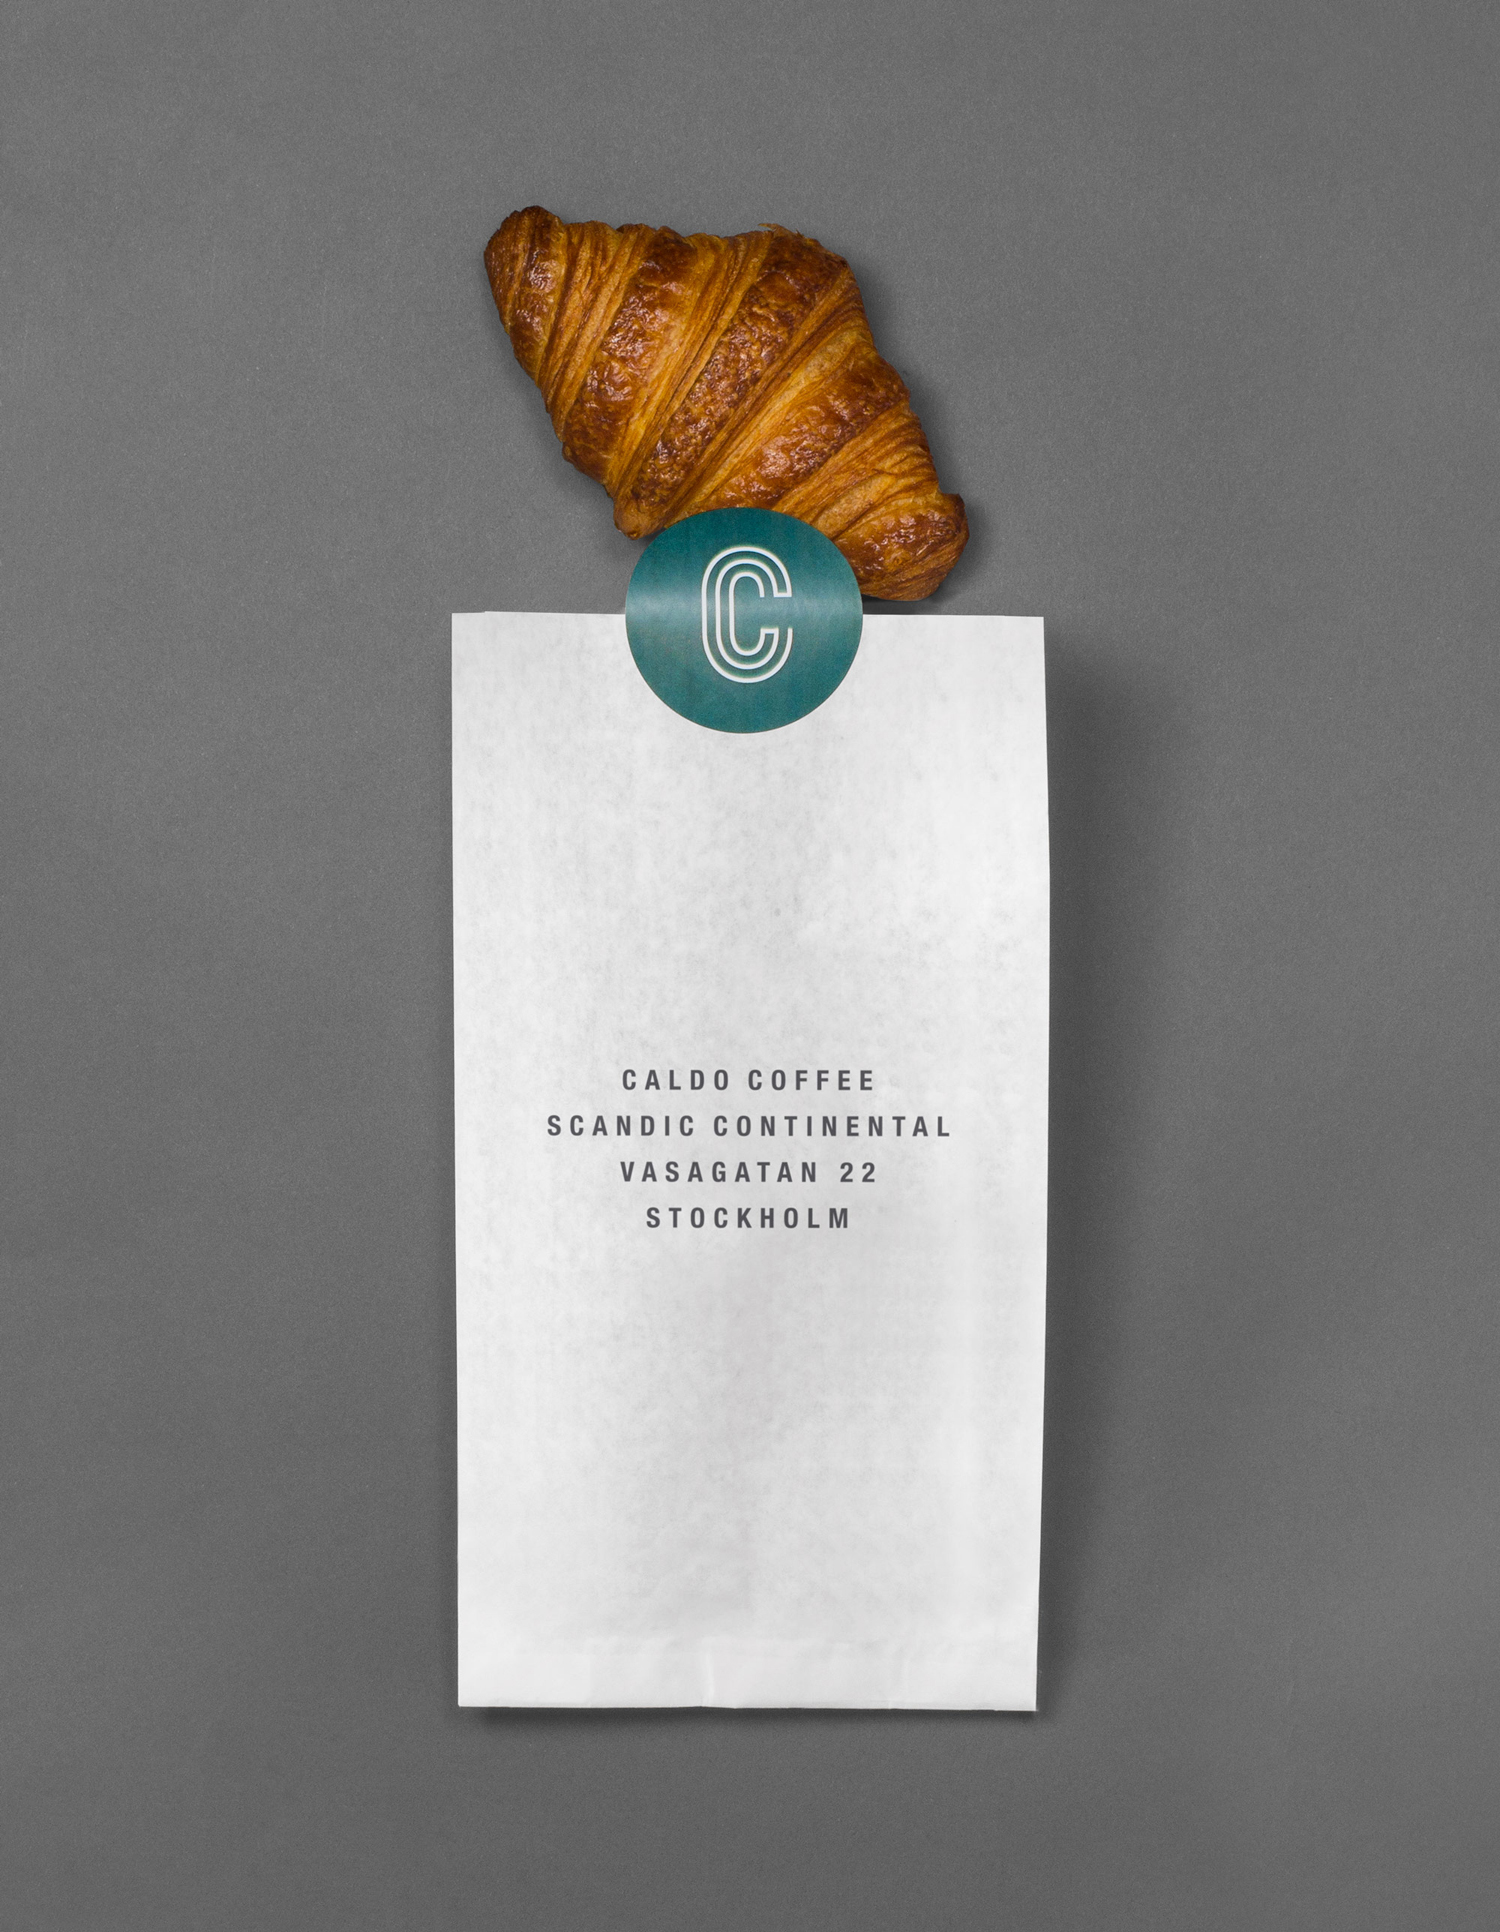 Logo and bakery packaging designed by 25ah for Stockholm cafe Caldo Coffee at the Scandic Continental